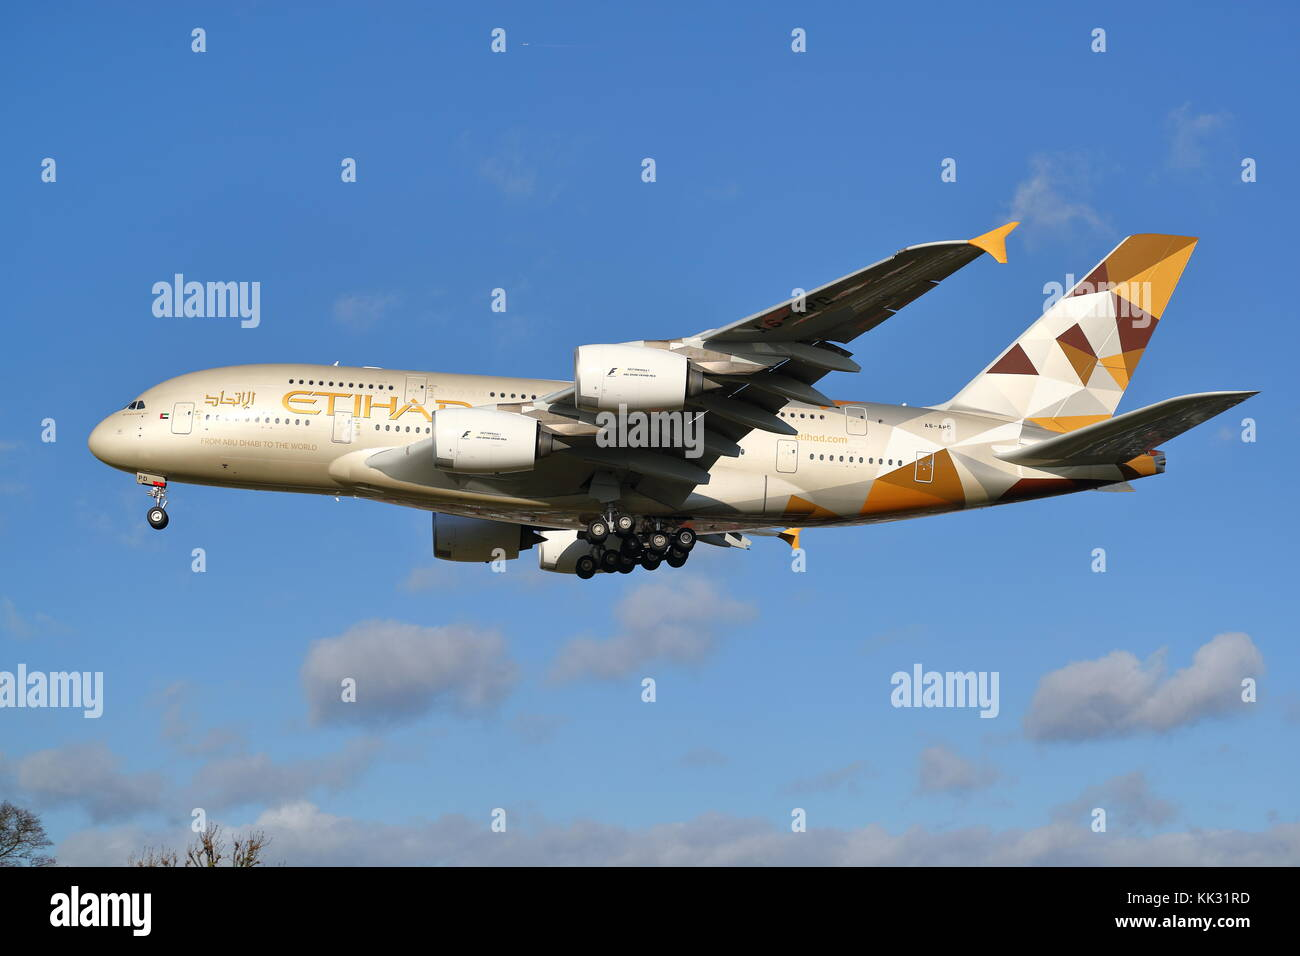 Etihad Airbus A380 A6-APD landing at London Heathrow Airport, UK - Stock Image